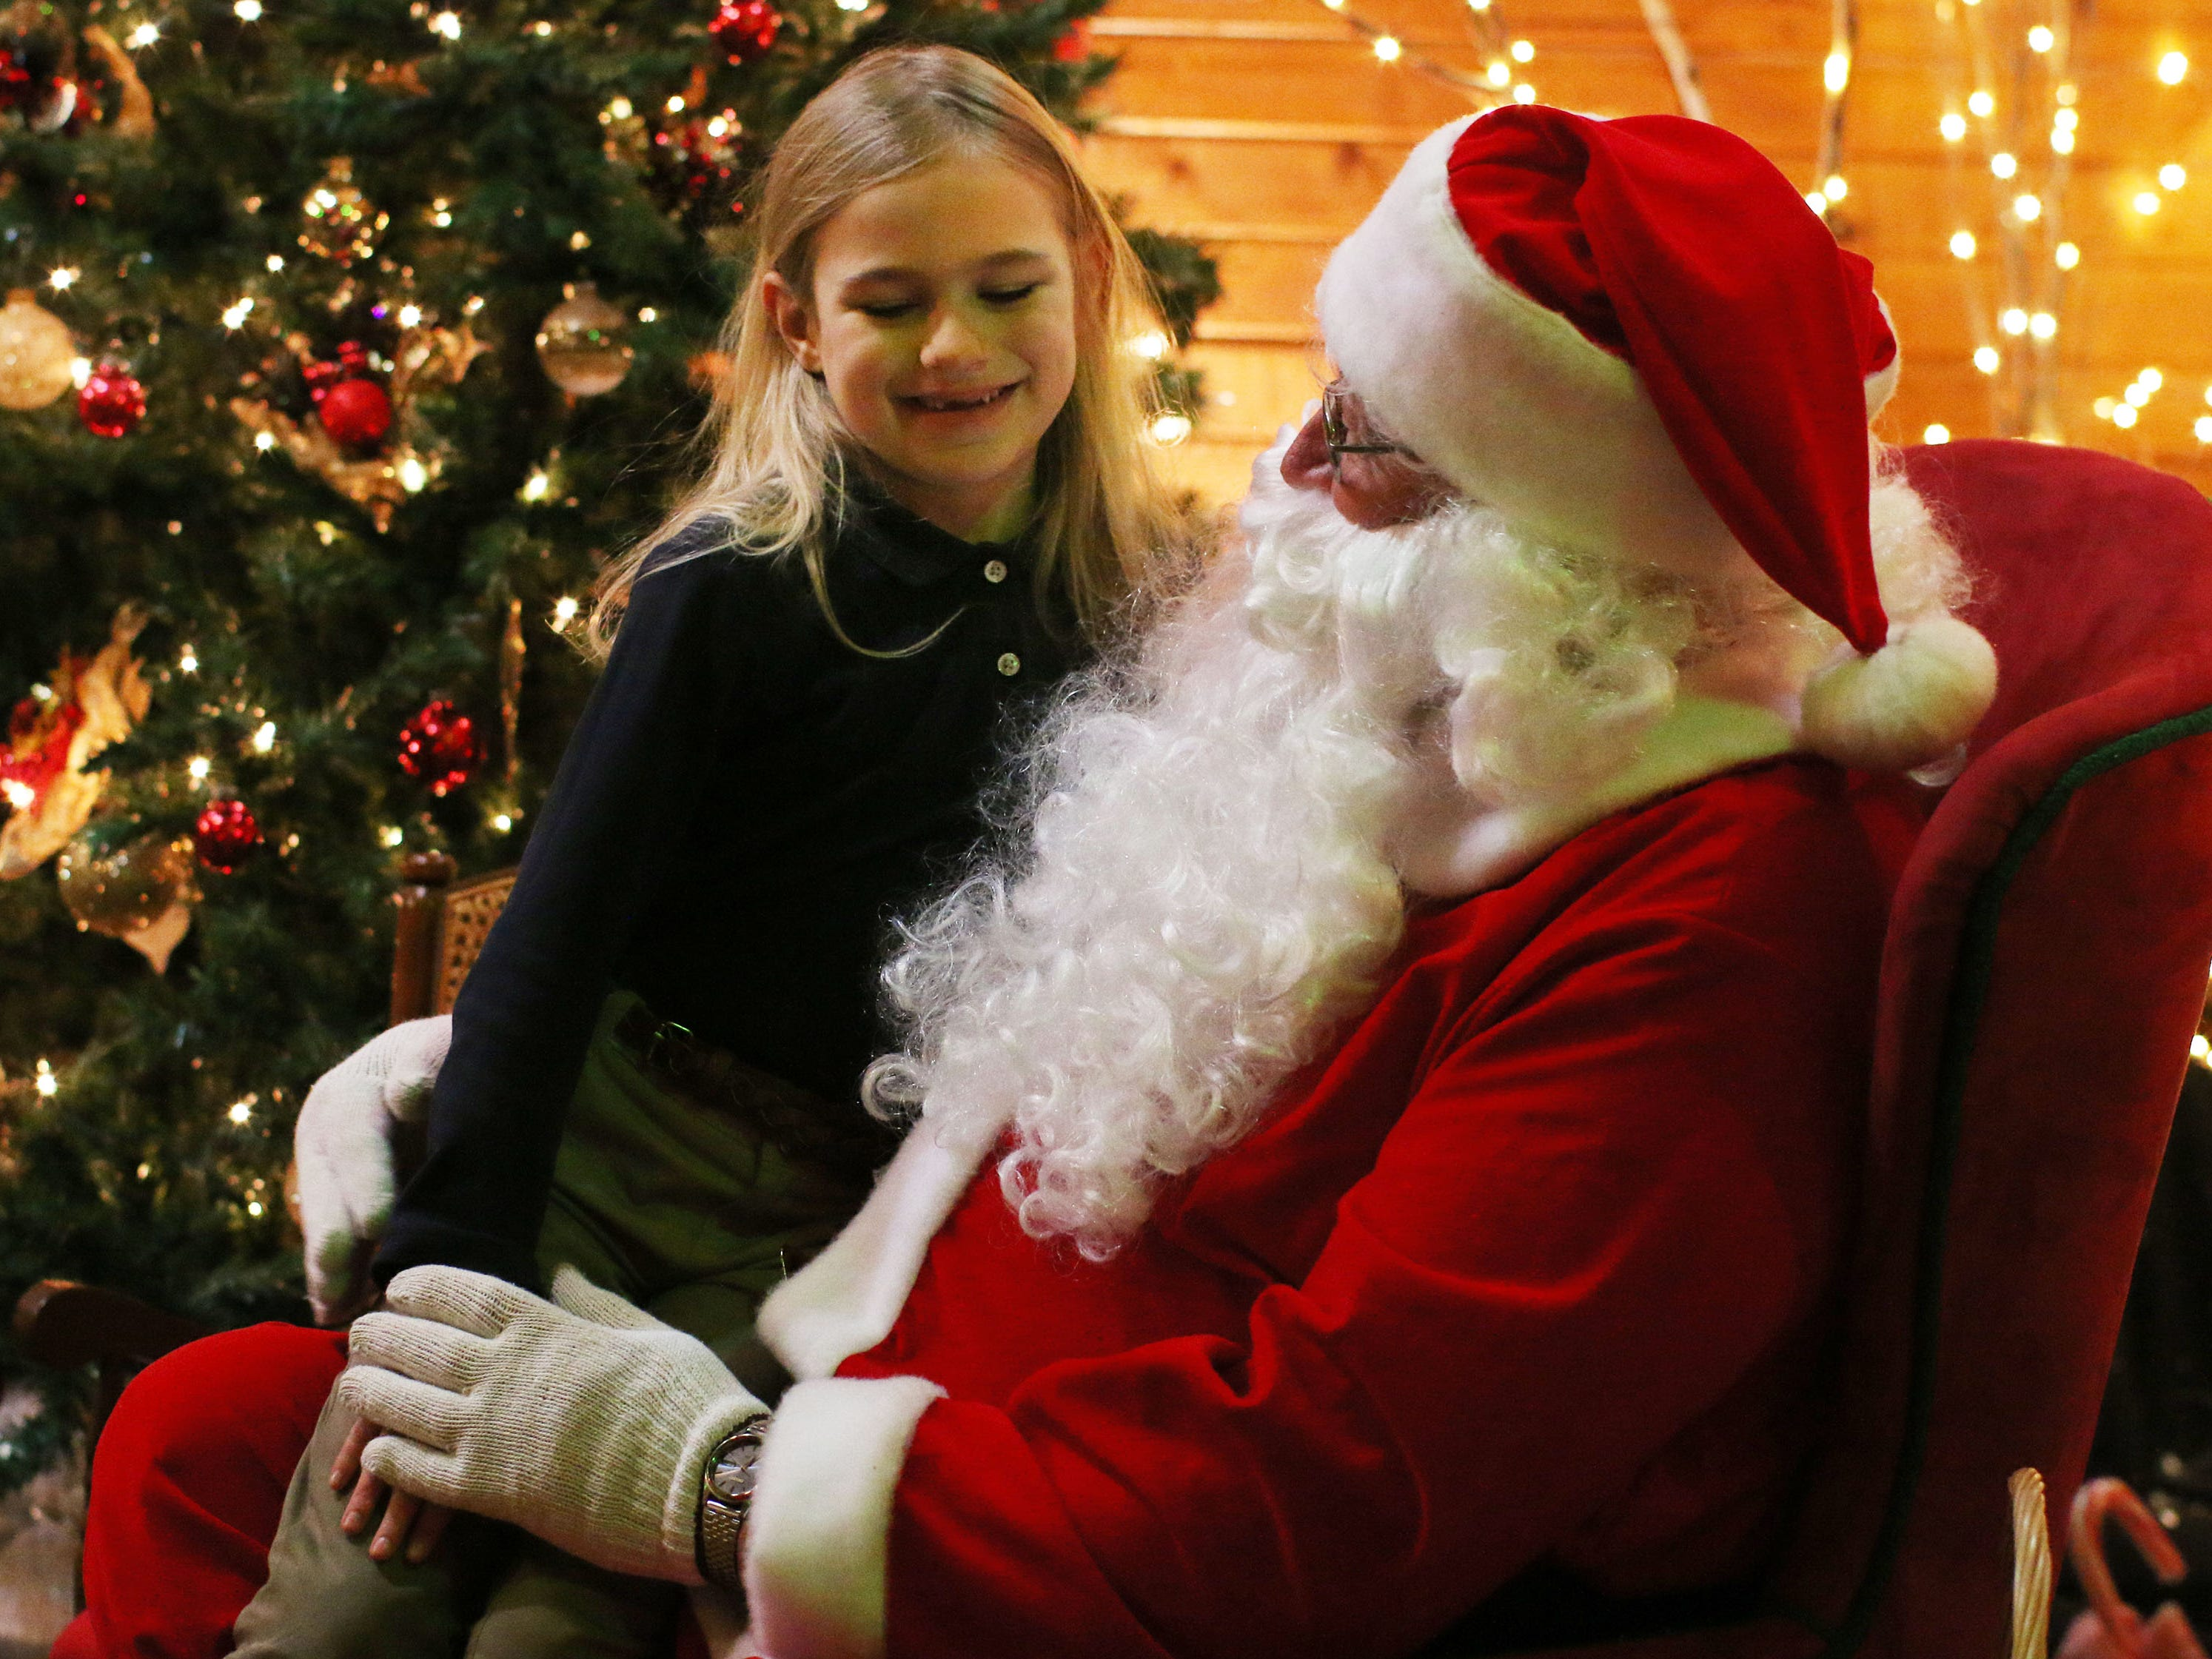 Cynthia Wagner, 7, gets in a gift request with Santa Claus at the Quarryview Center for Making Spirits Bright, Friday, November 30, 2018, in Sheboygan, Wis.